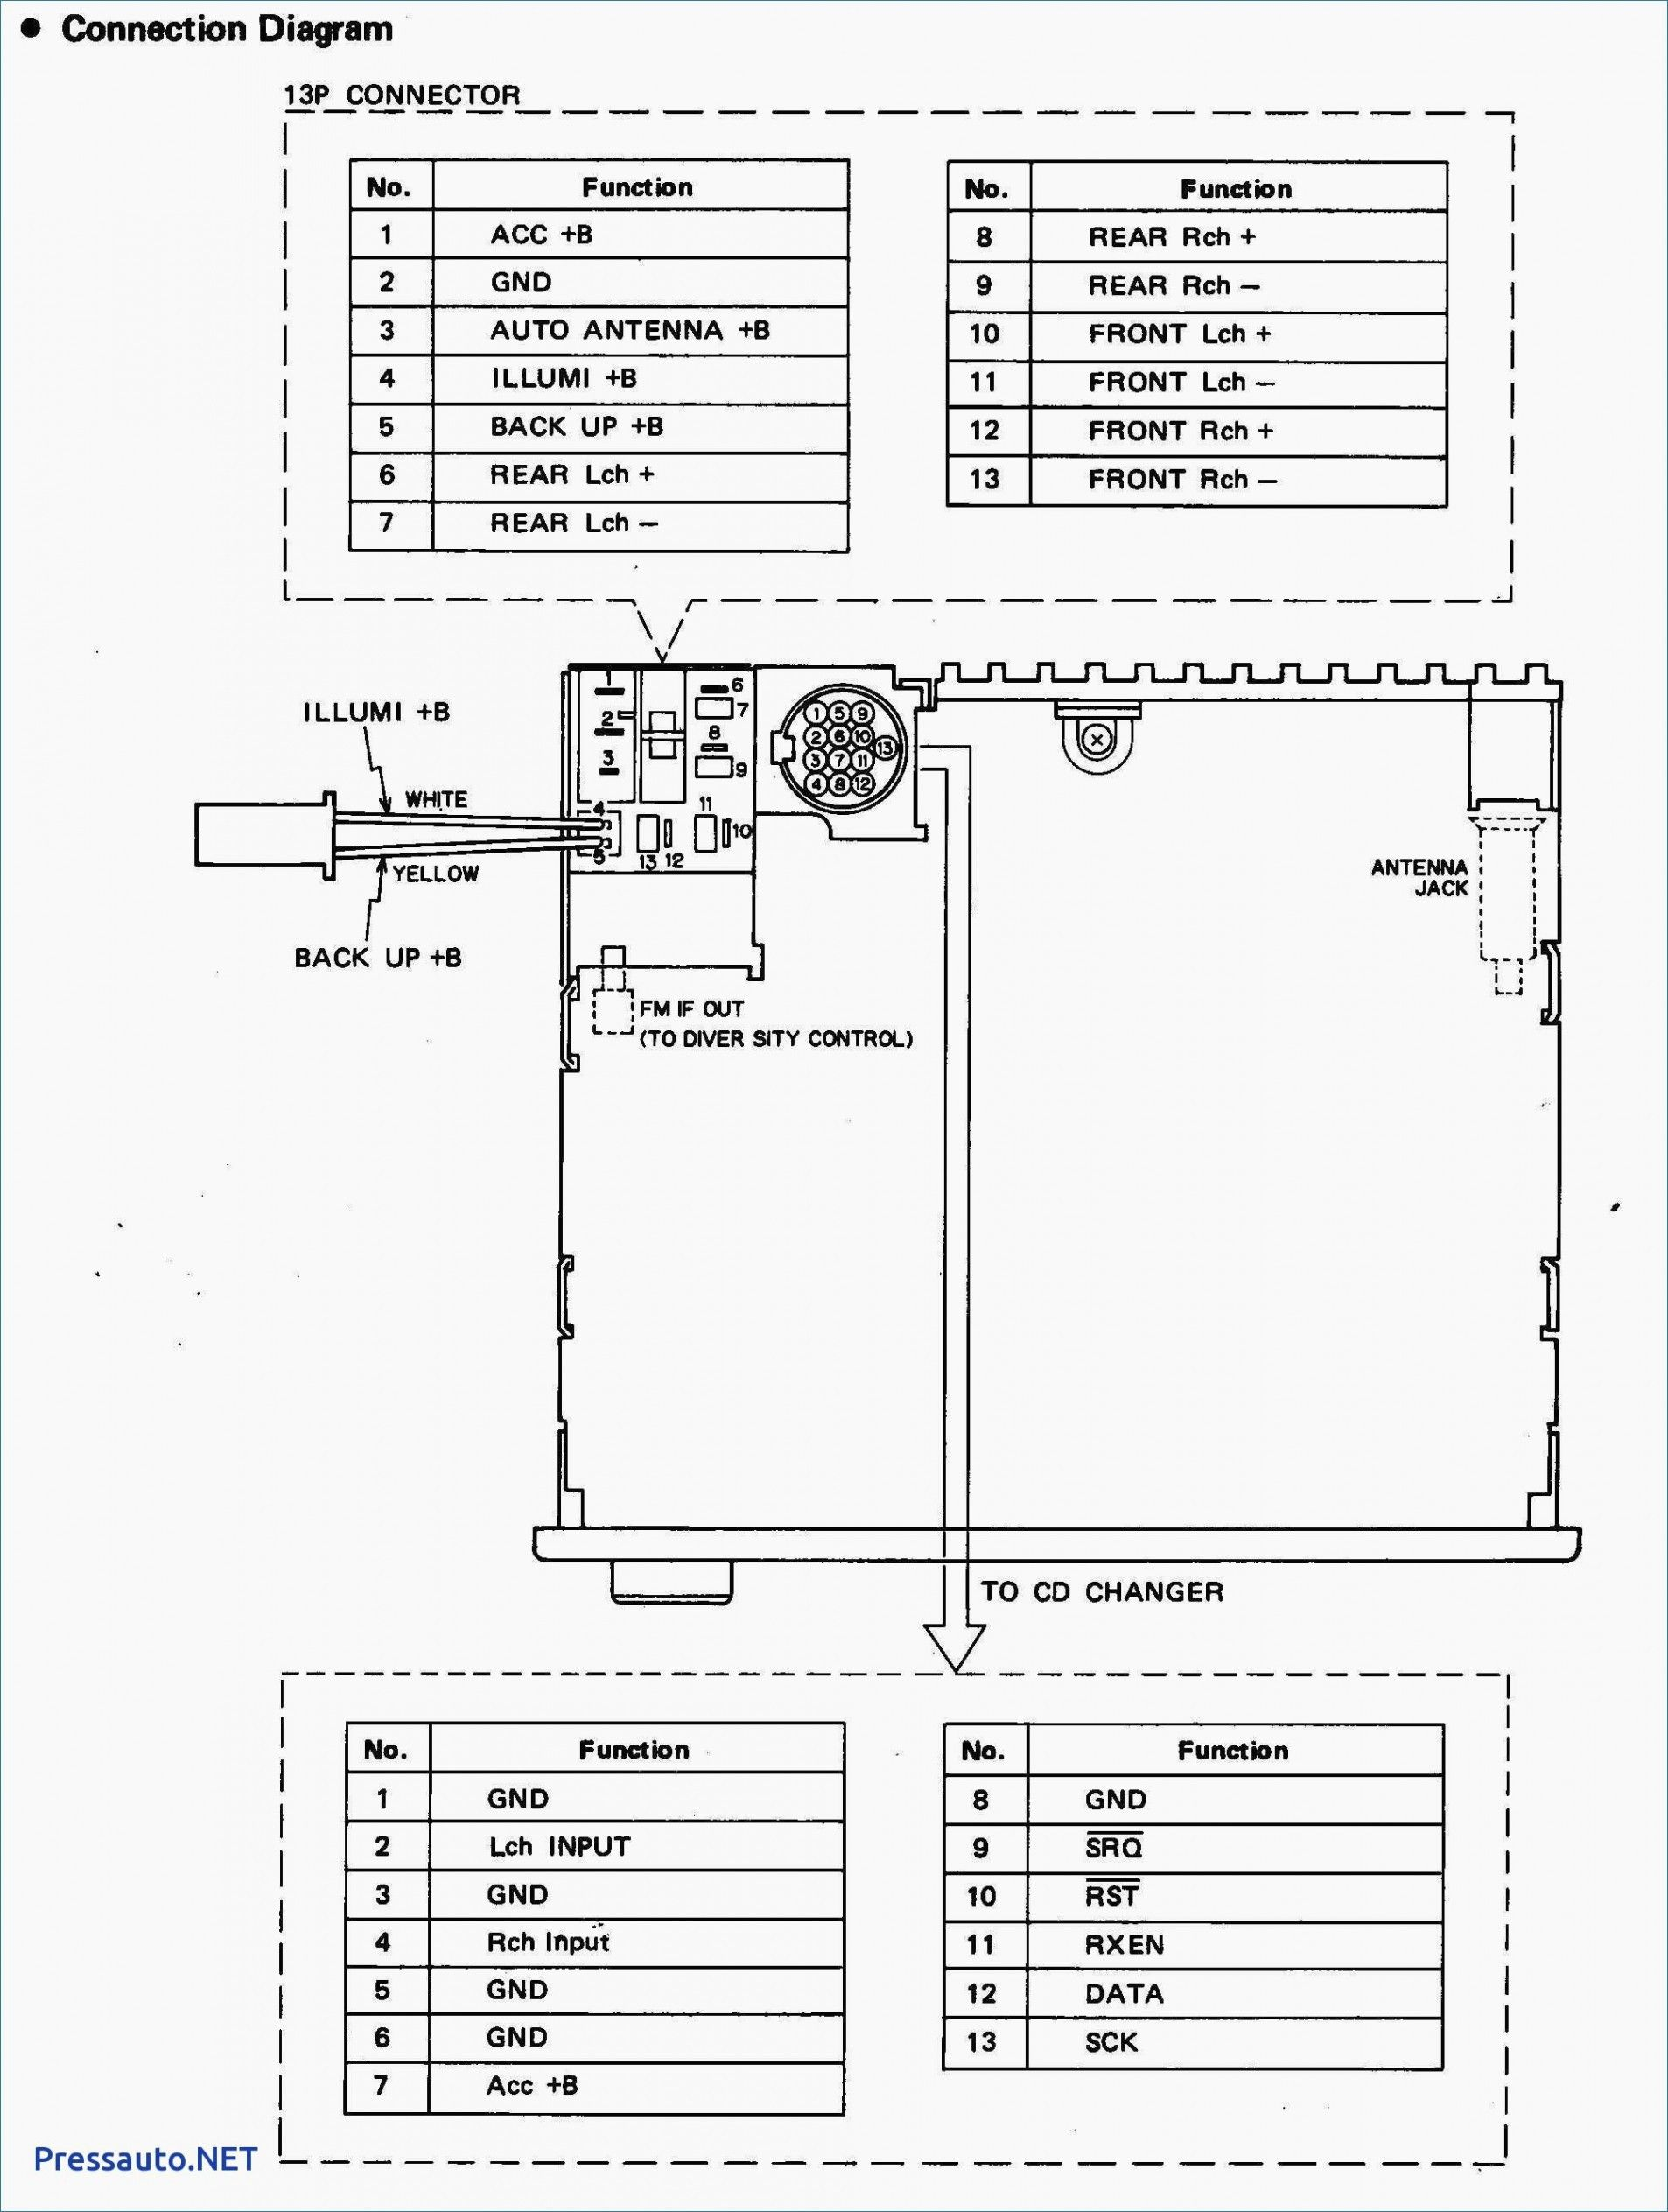 Wiring Diagram Car Stereo Http Bookingritzcarlton Info Wiring Diagram Car Stereo Diagram Bmw E46 Alternator